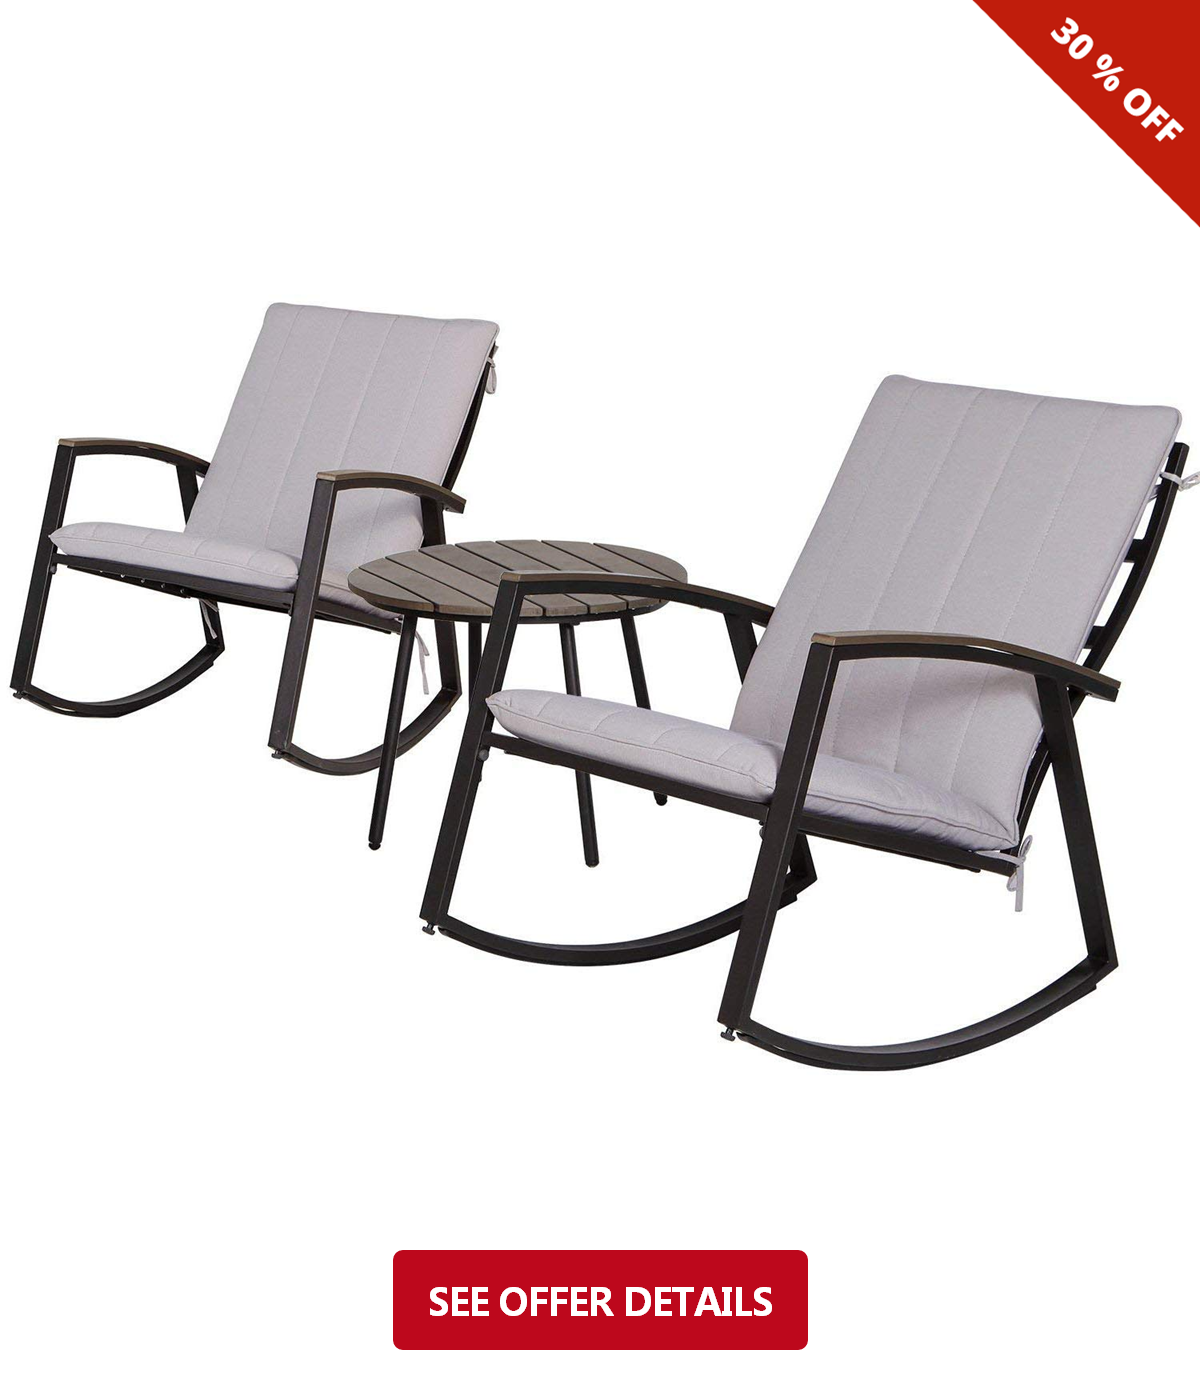 Admirable 175 Lch Outdoor 3 Piece Rocking Chair Bistro Sets Patio Ibusinesslaw Wood Chair Design Ideas Ibusinesslaworg